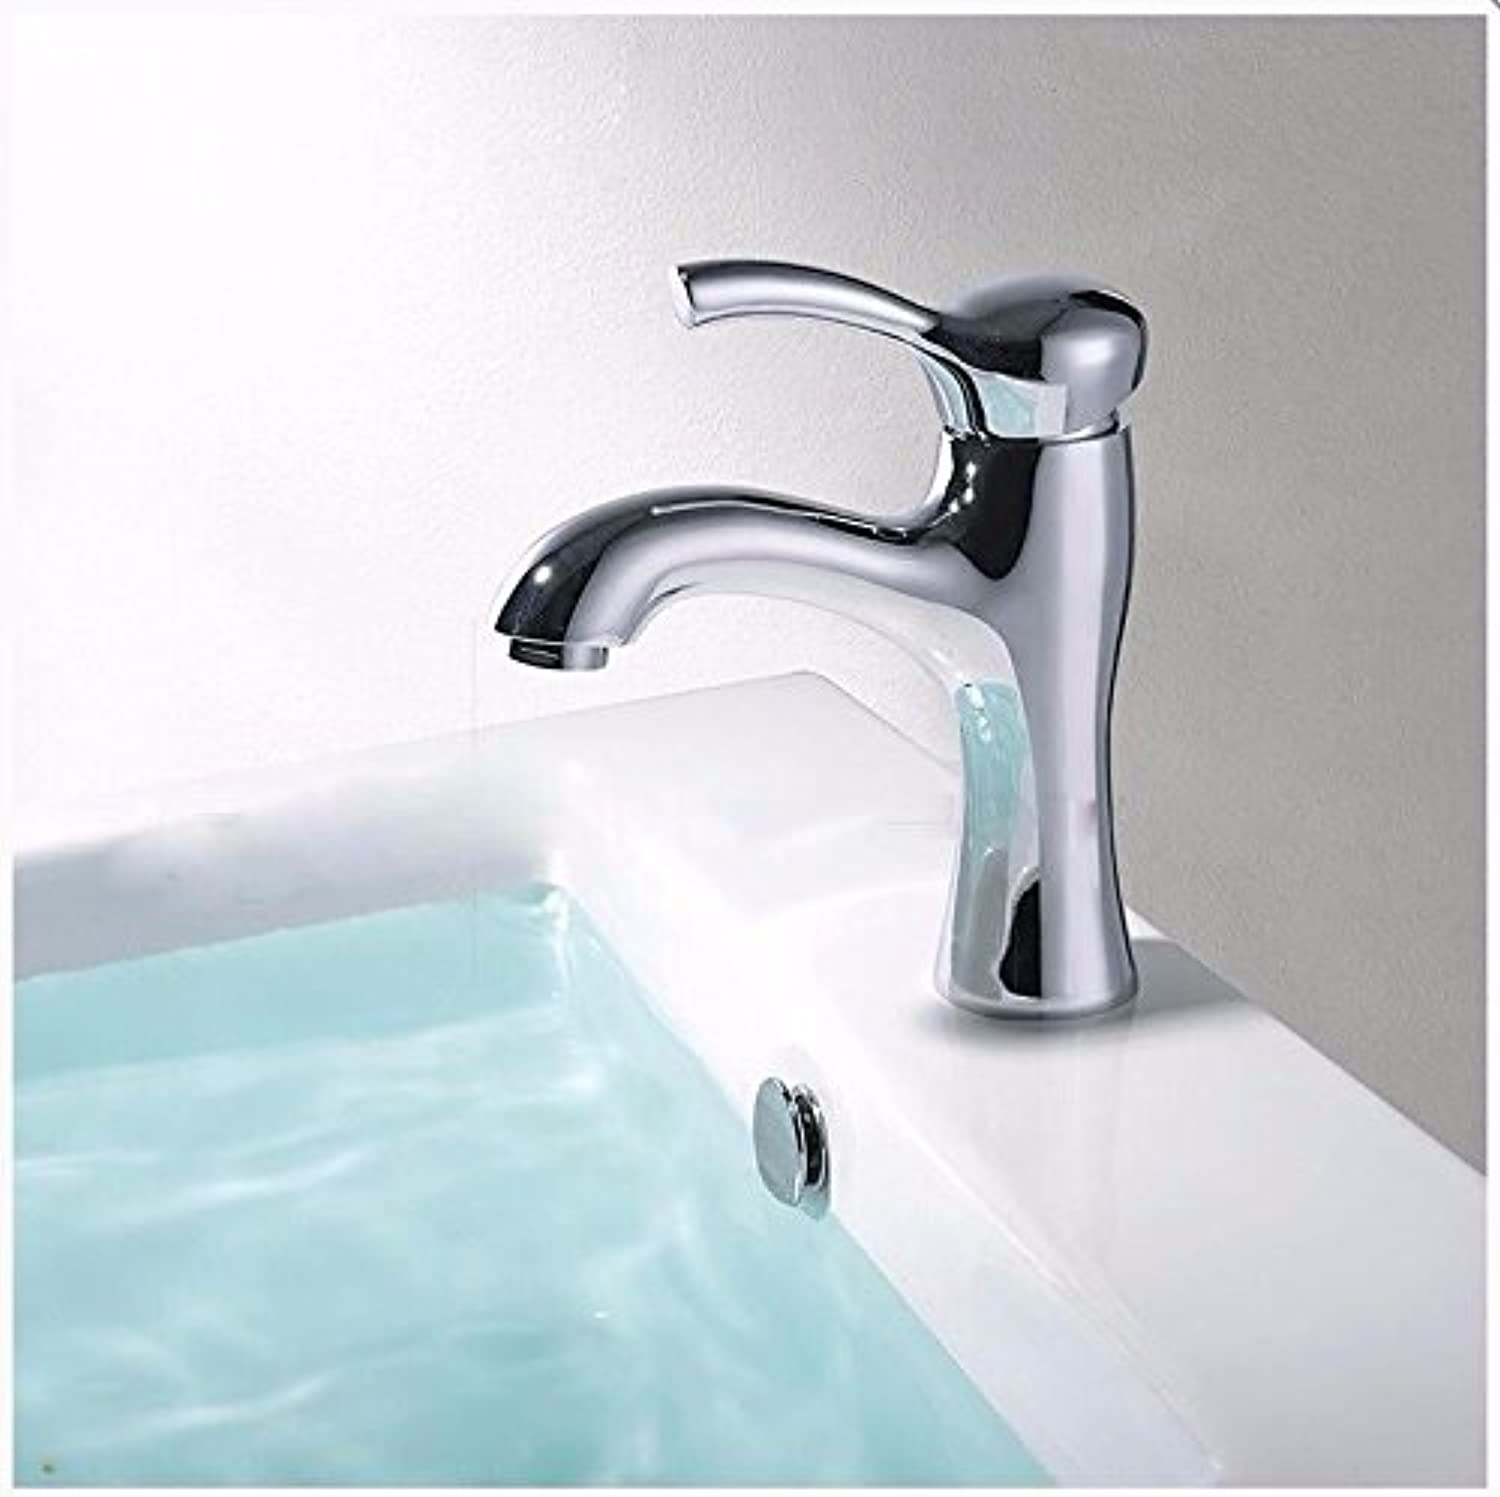 Hlluya Professional Sink Mixer Tap Kitchen Faucet The copper basin of hot and cold single hole faucets single hole Washbasin Faucet mixer